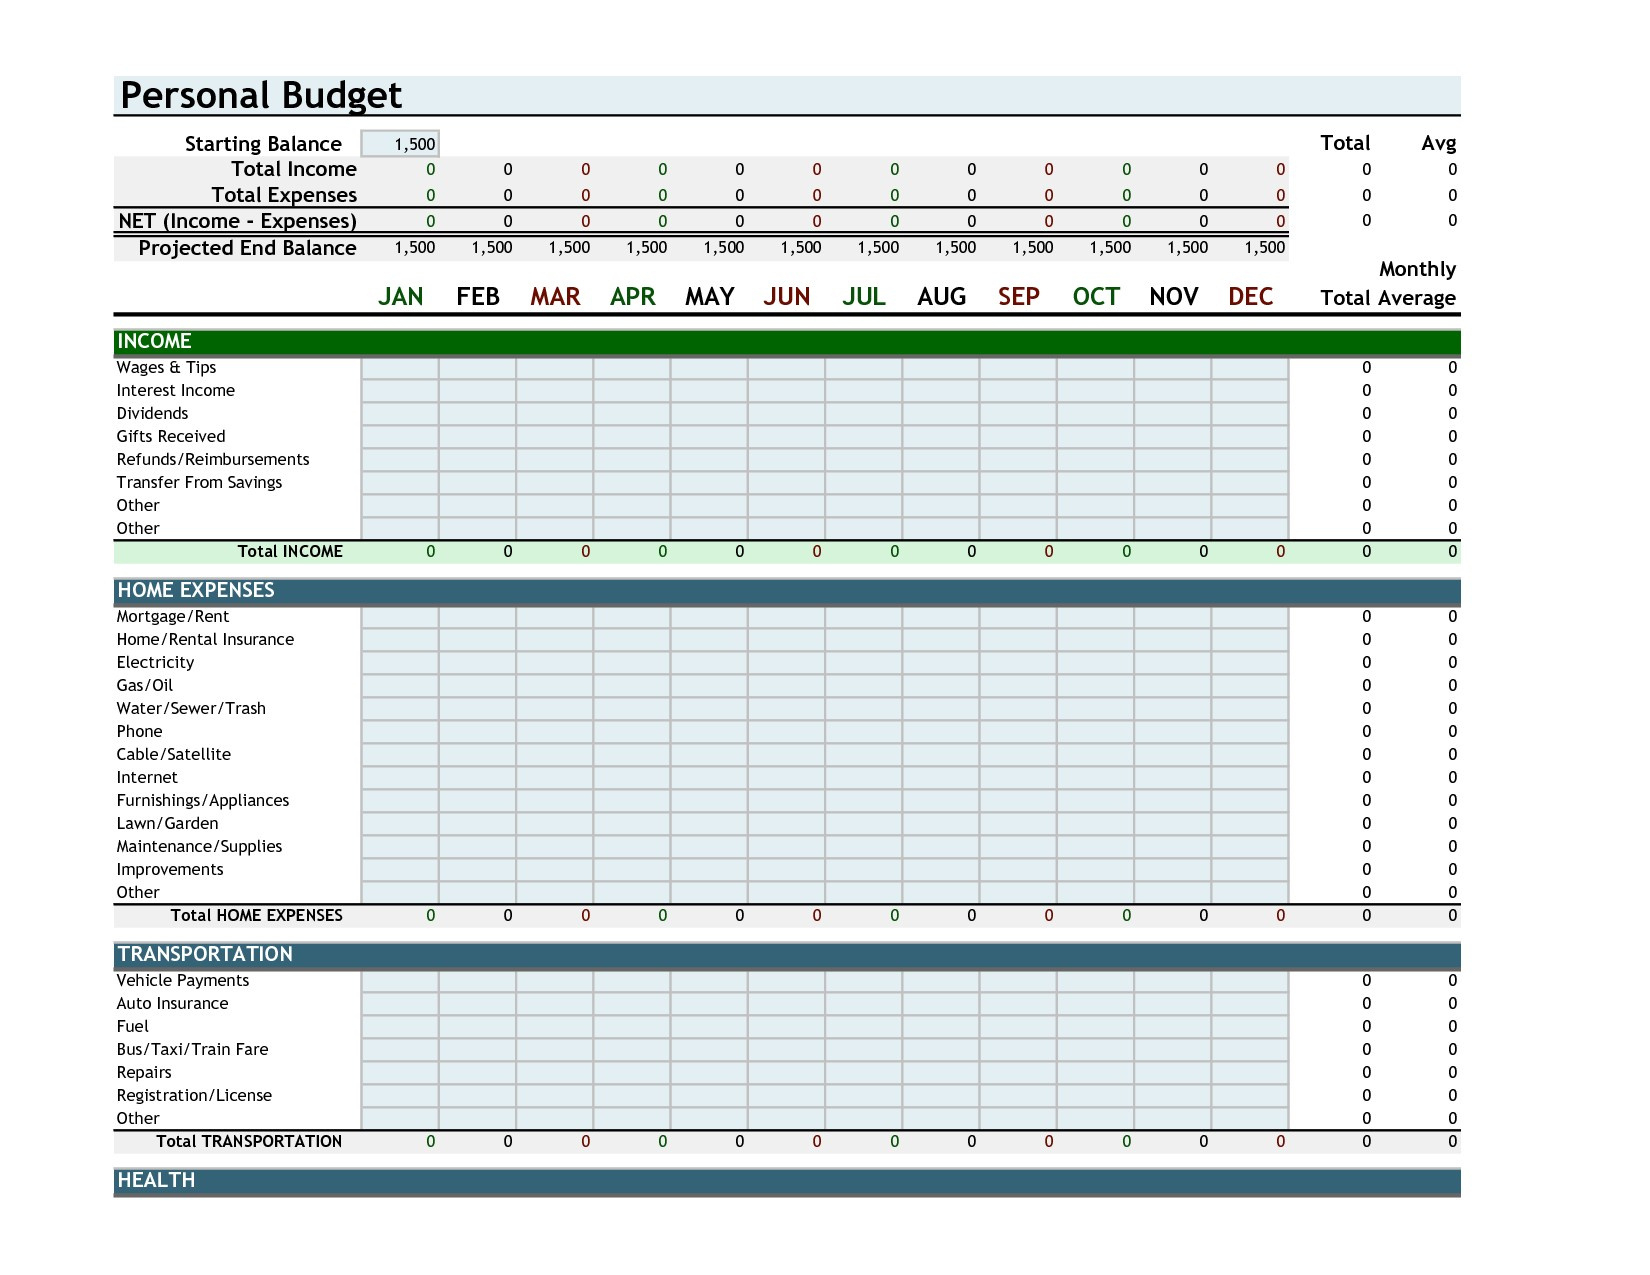 Personal Finance Spreadsheet Excel – Spreadsheet Collections To Personal Finance Spreadsheet Excel